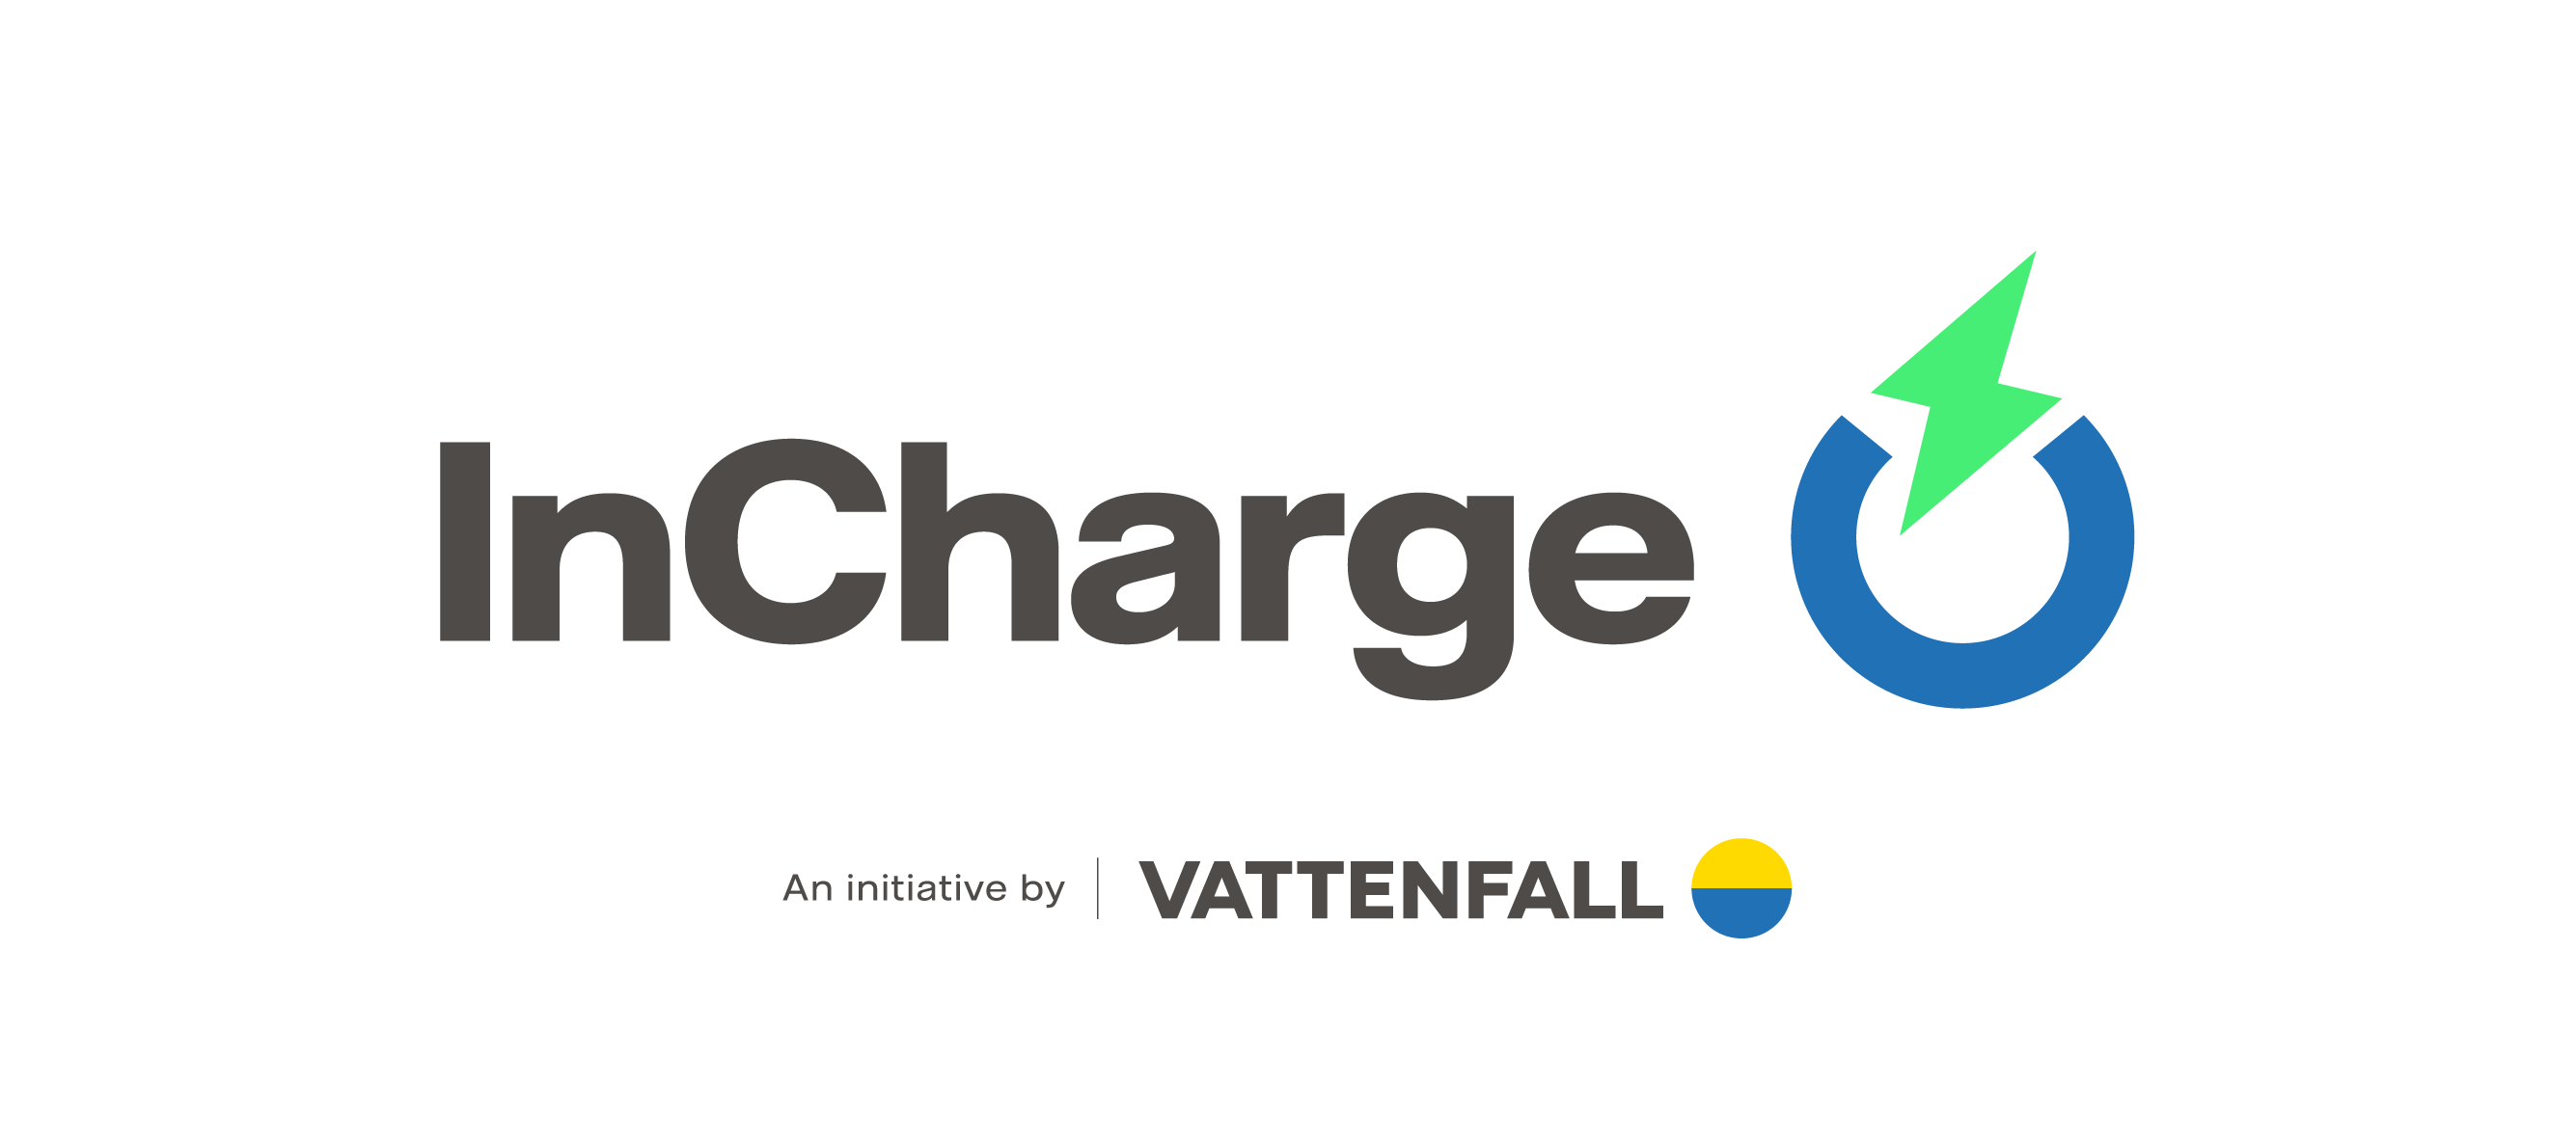 inCharge logo